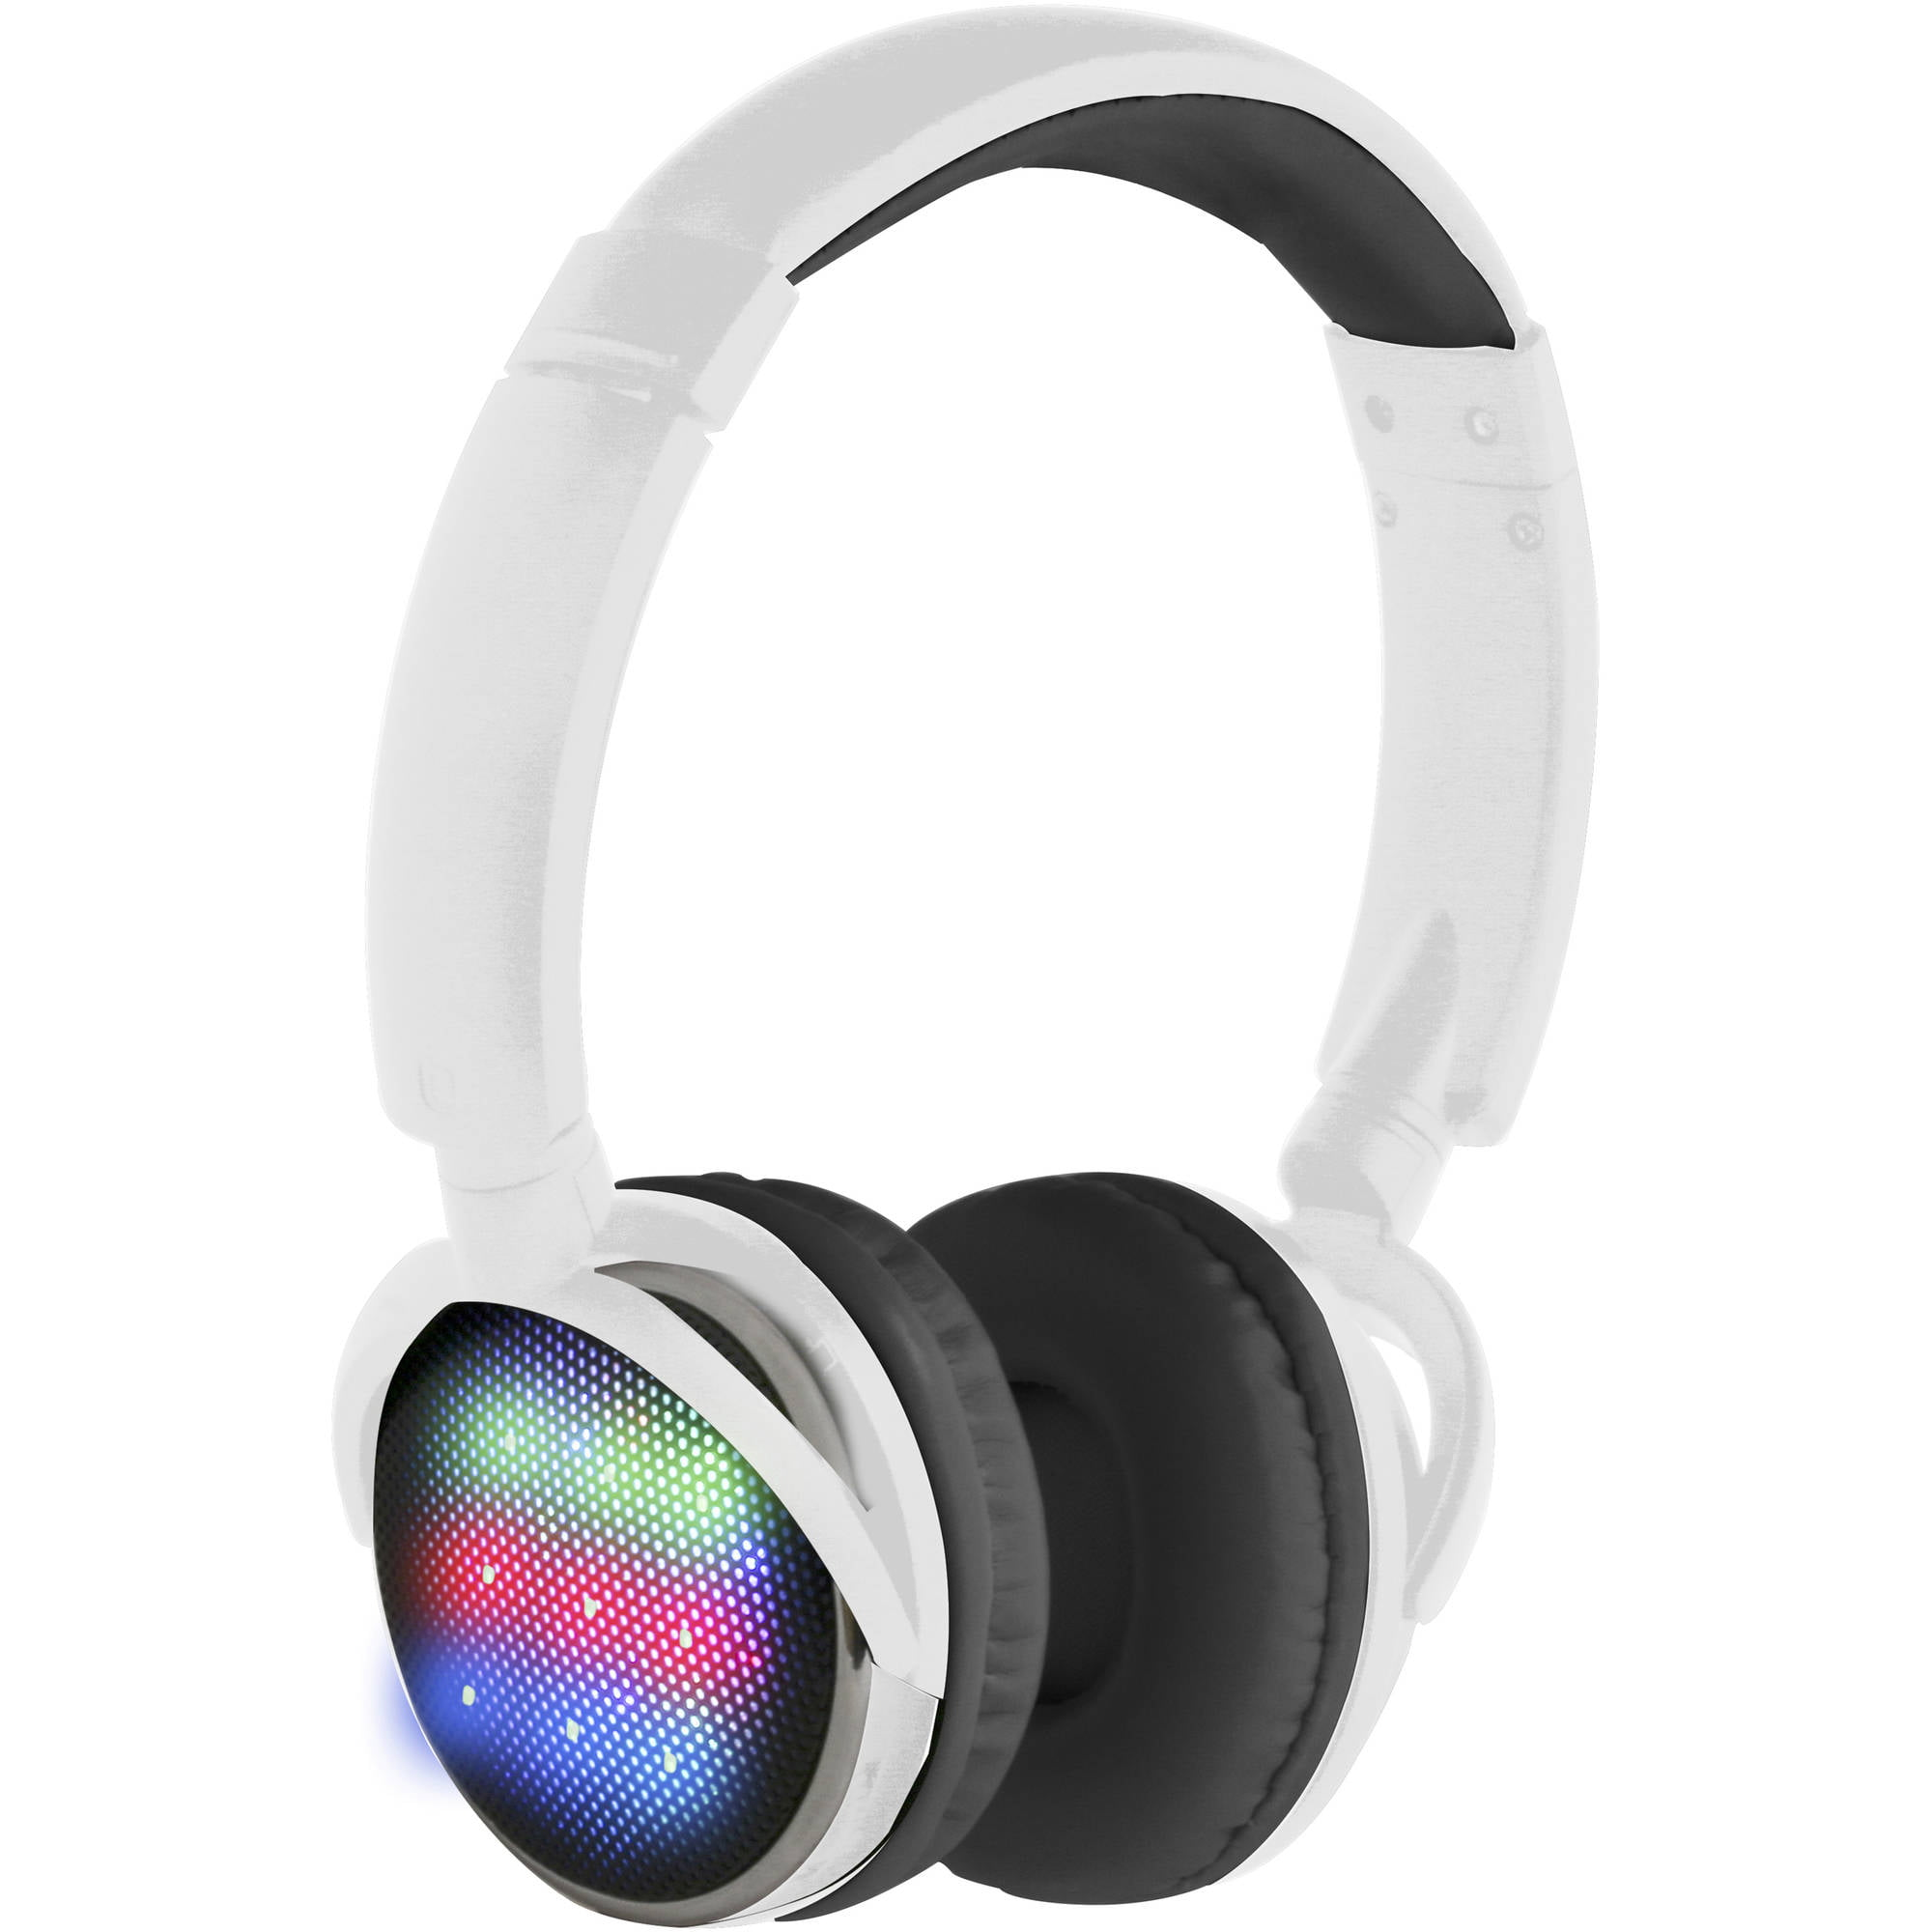 Ihip Light Up Bluetooth Headphones Walmart Com Walmart Com